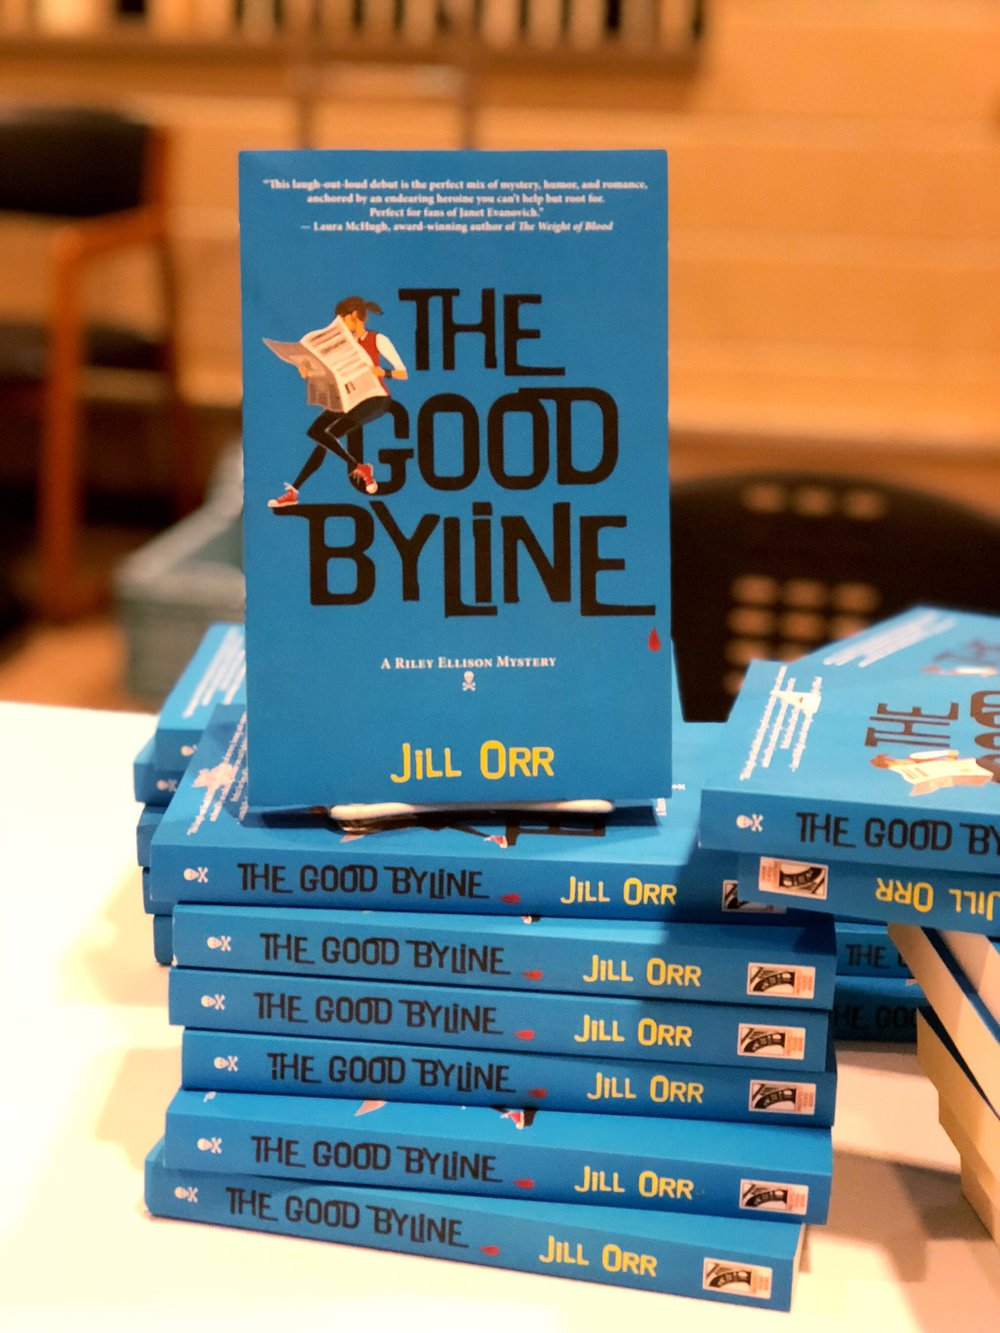 The Good Byline by Jill Orr